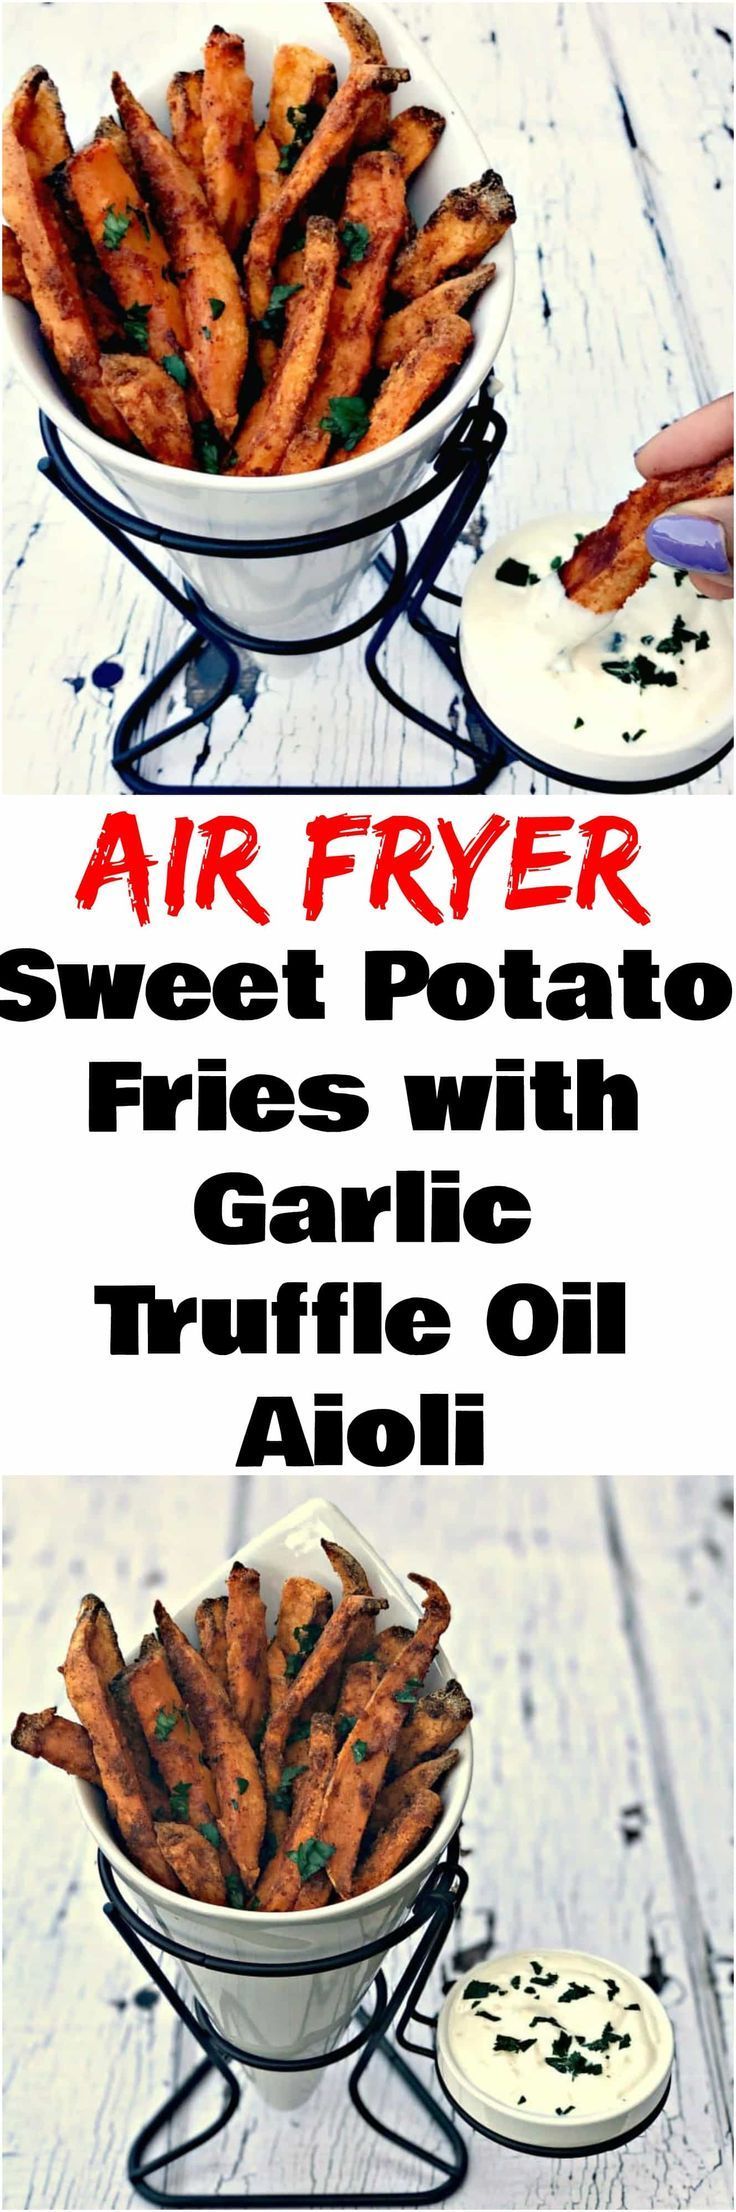 Air Fryer Crispy Crunchy Sweet Potato Fries are healthy fried sweet potato french fries that are low in fat and perfect for guilt-free meals.